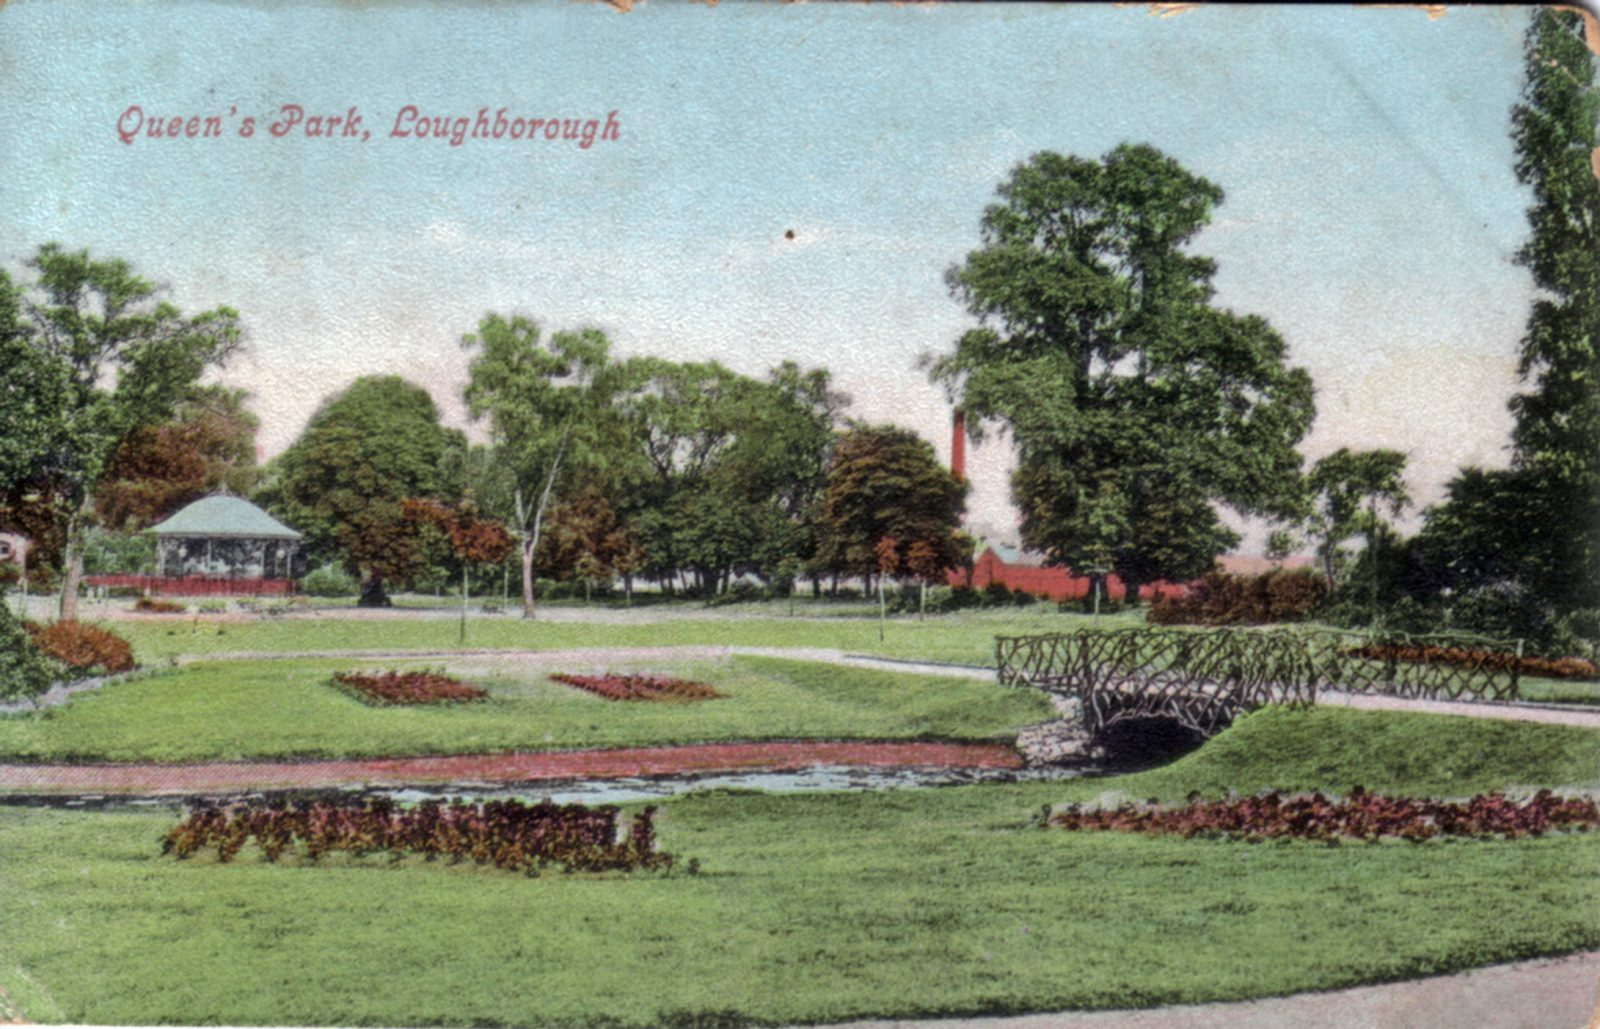 Queens Park, Loughborough. 1901-1920: Looking across a stream with rustic bridge. Formal beds. Bandstand in distance. Franked 1908 (File:1138)